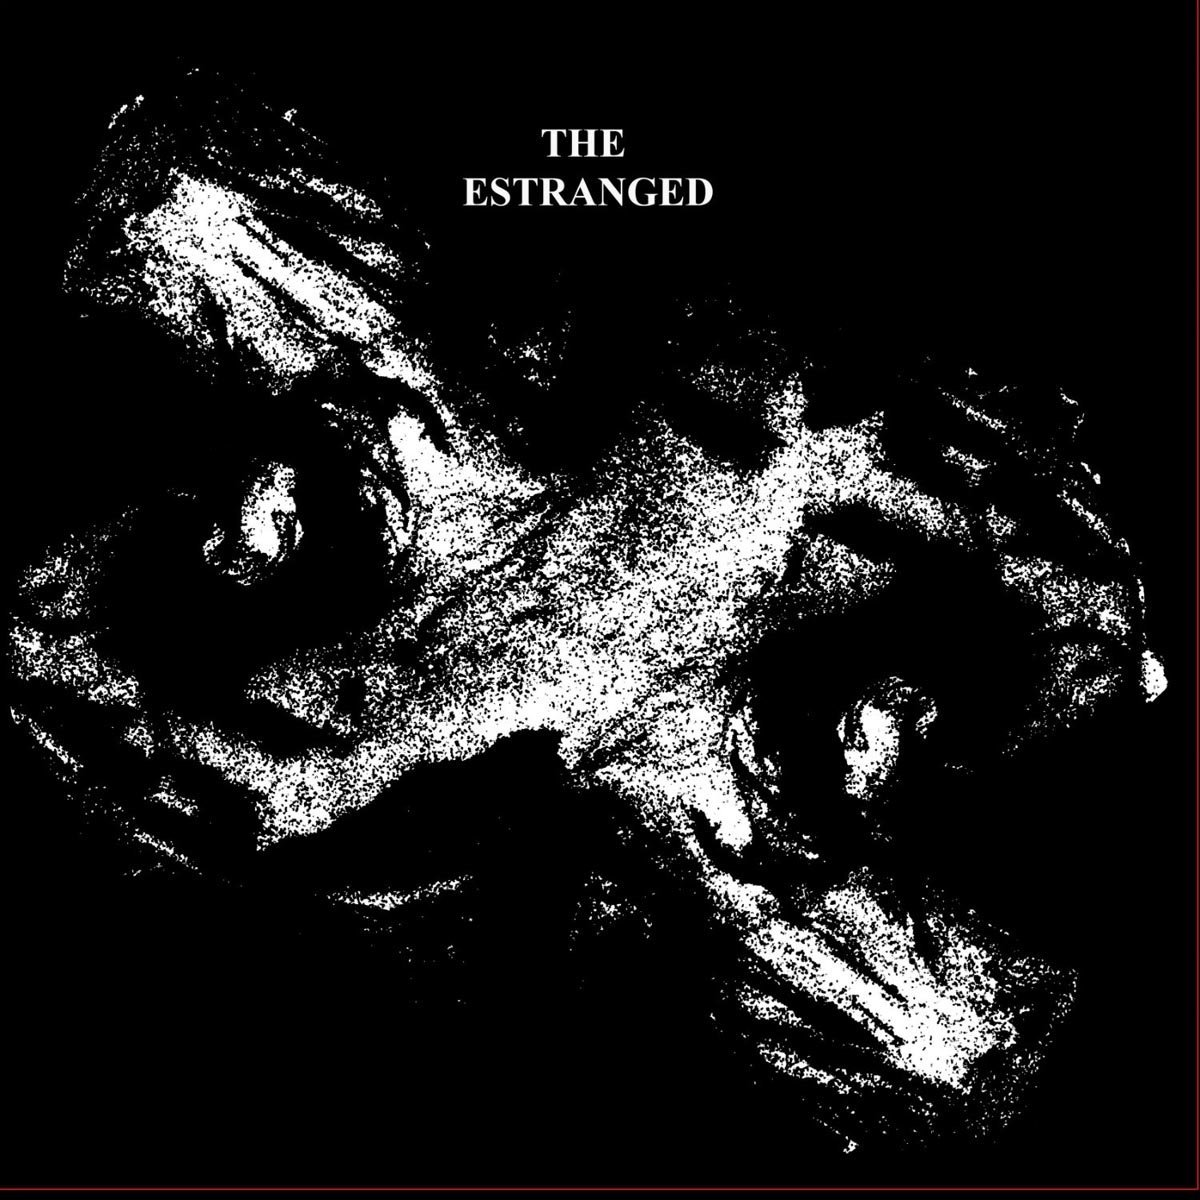 The Estranged - The Estranged